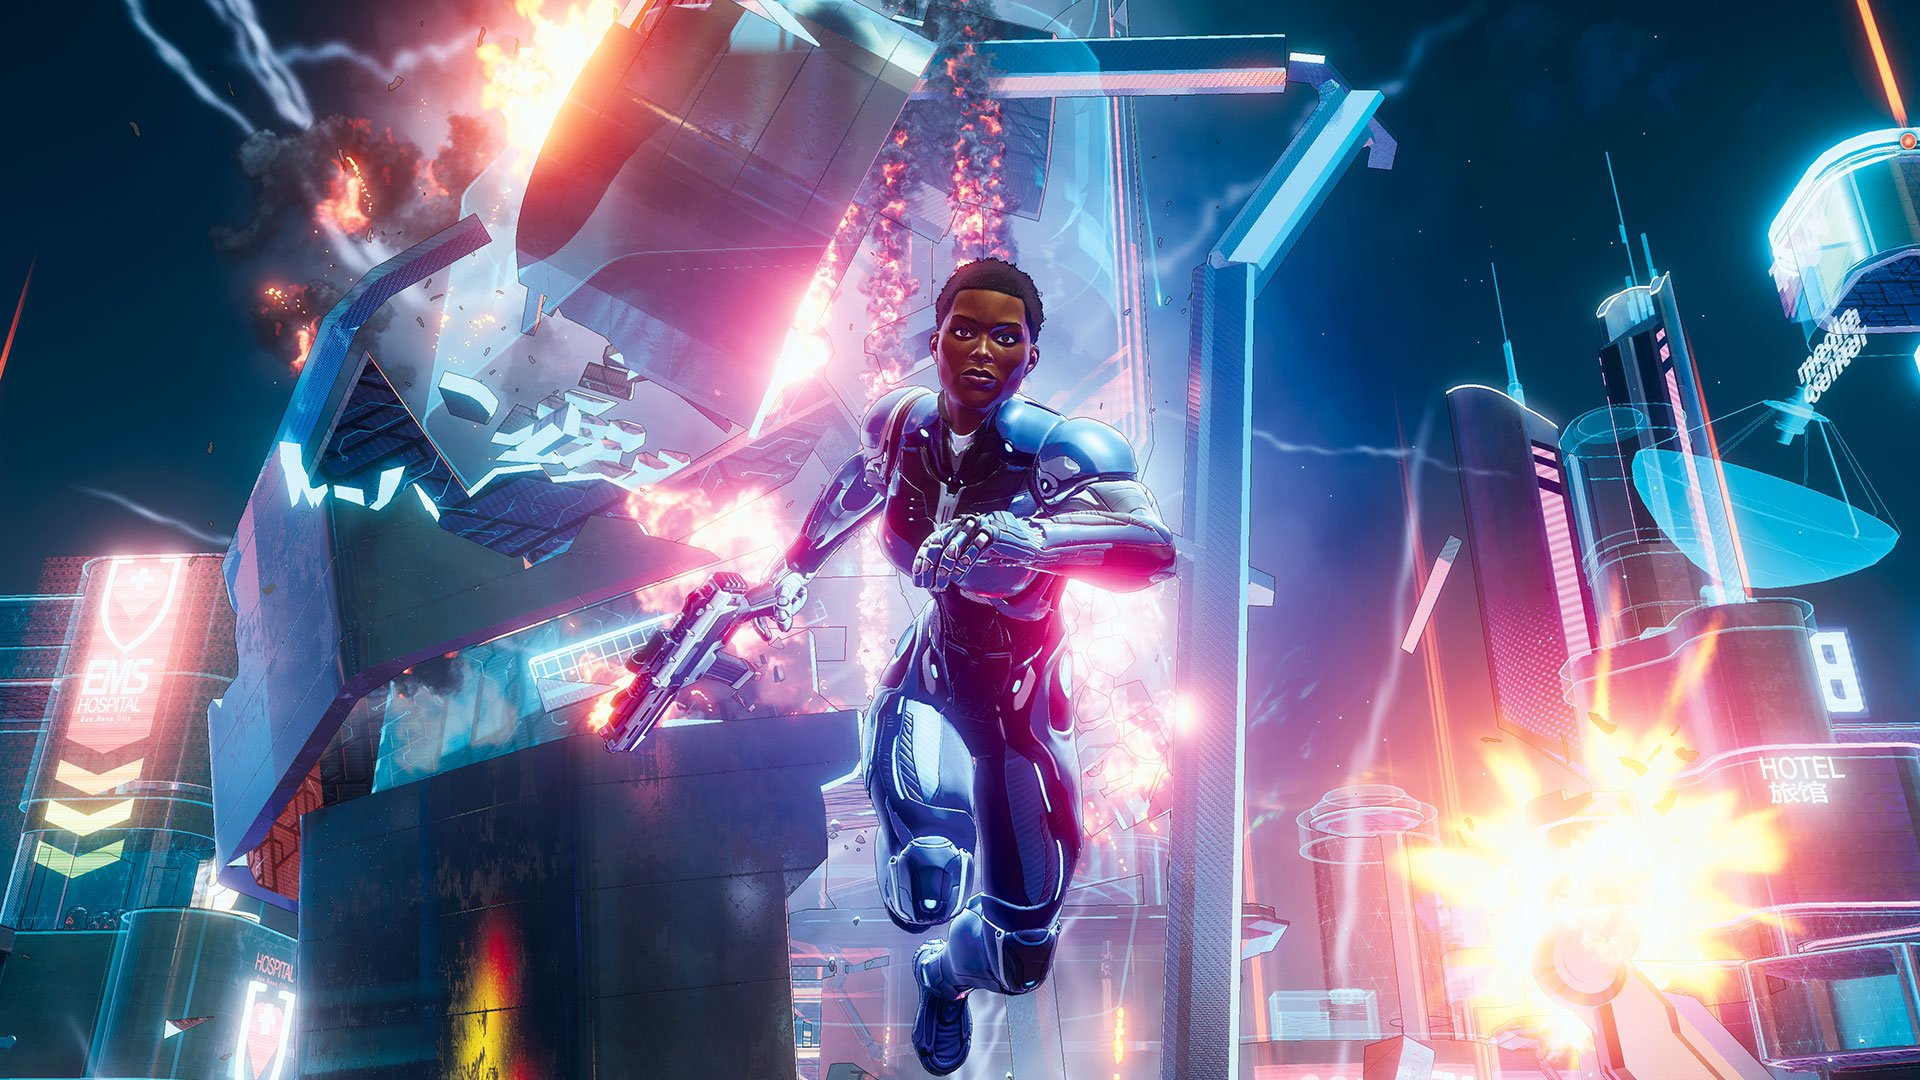 While the minimum and recommended PC requirements for Crackdown 3 are similar, hardware recommendations will vary.